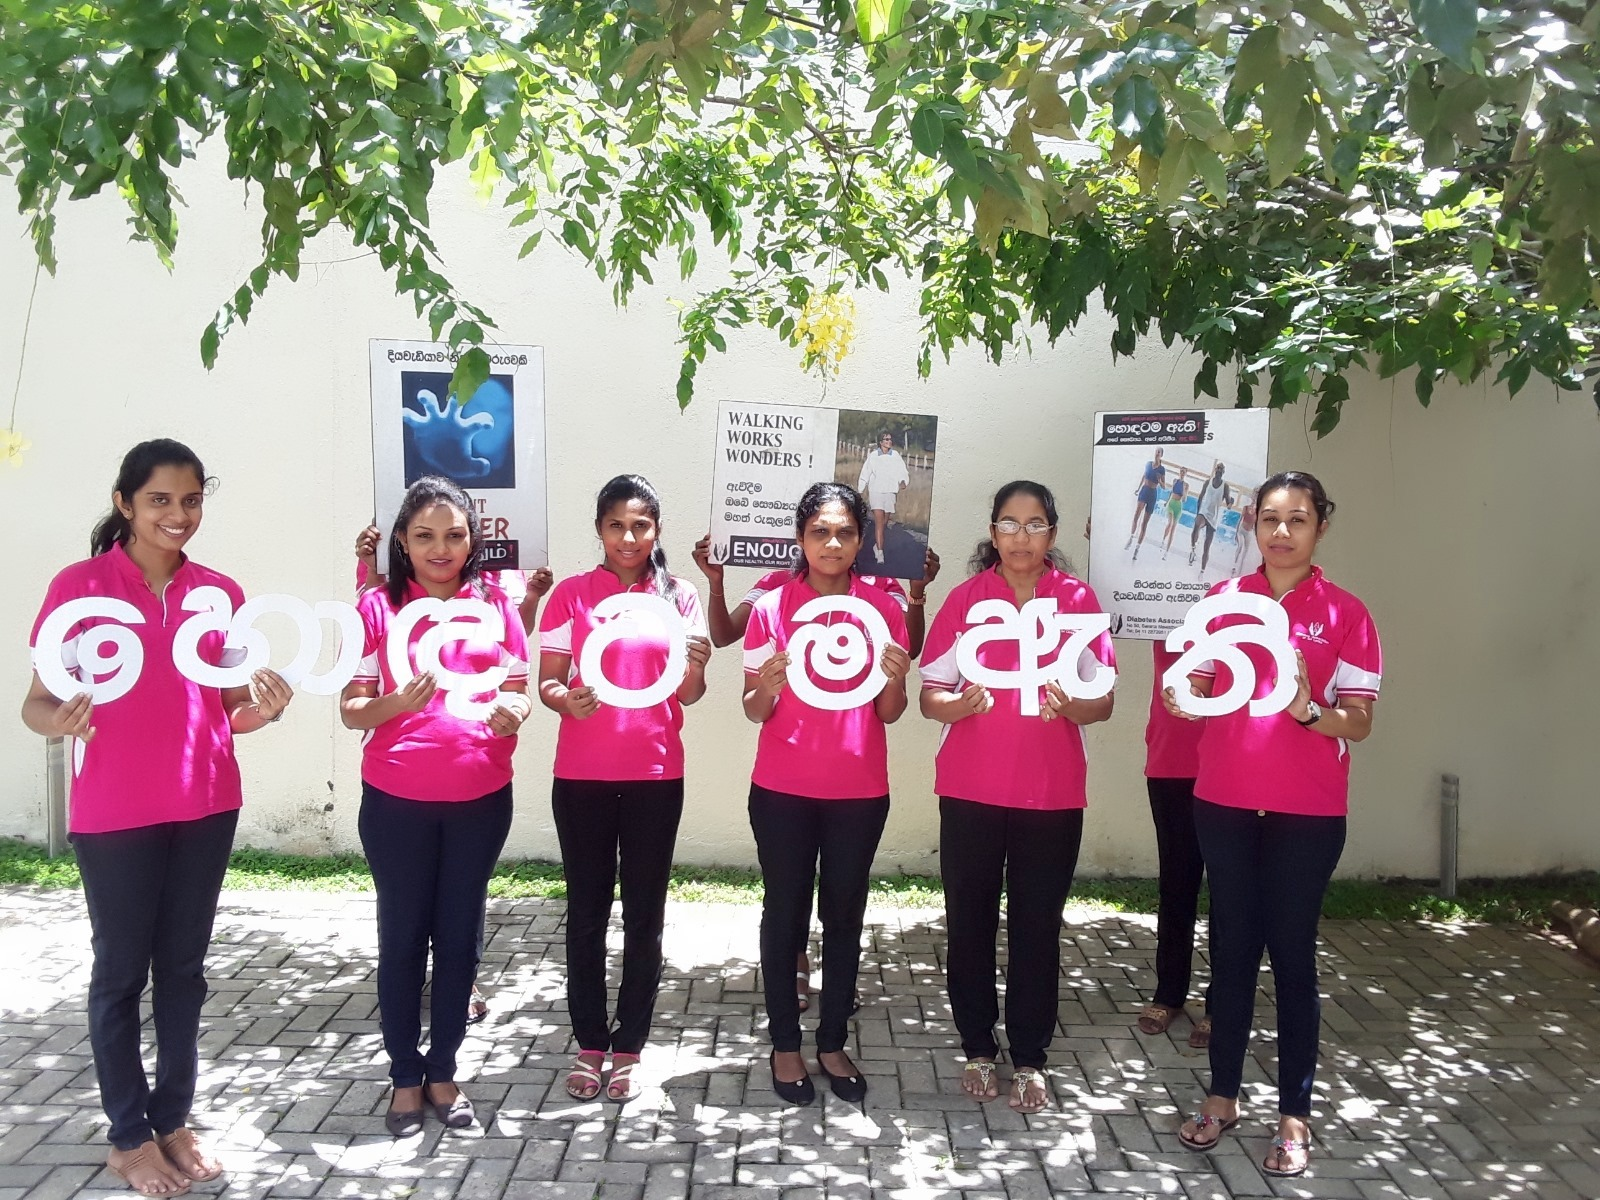 NCD Alliance Lanka's 2019 Week for Action activities included screening and education and PLWNCDs sharing insights into their experiences